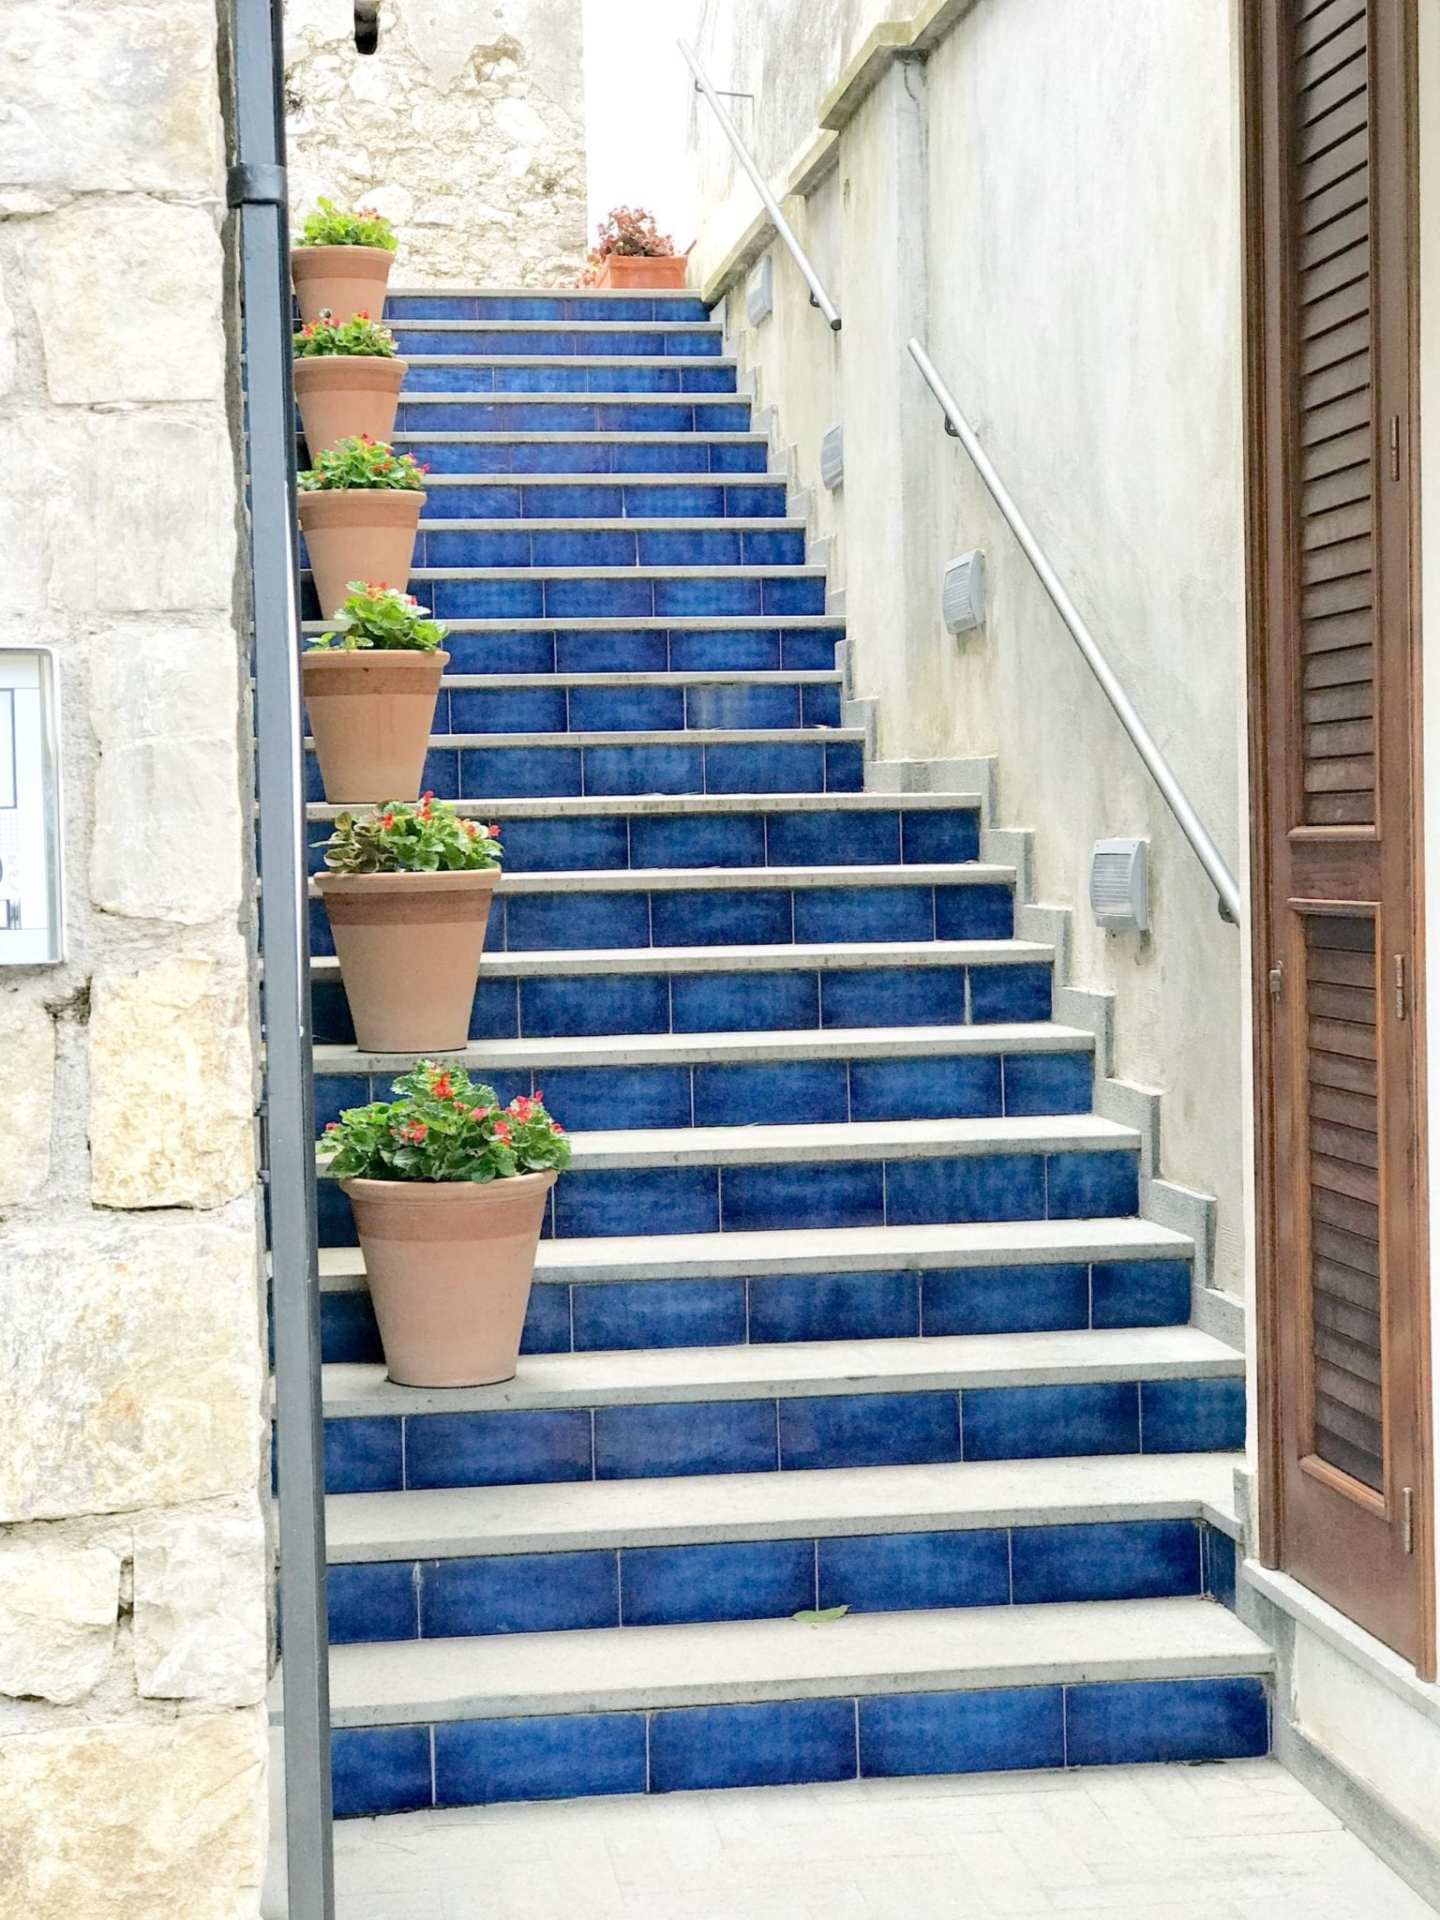 Ravello staircase and review of Ravello, Italy.